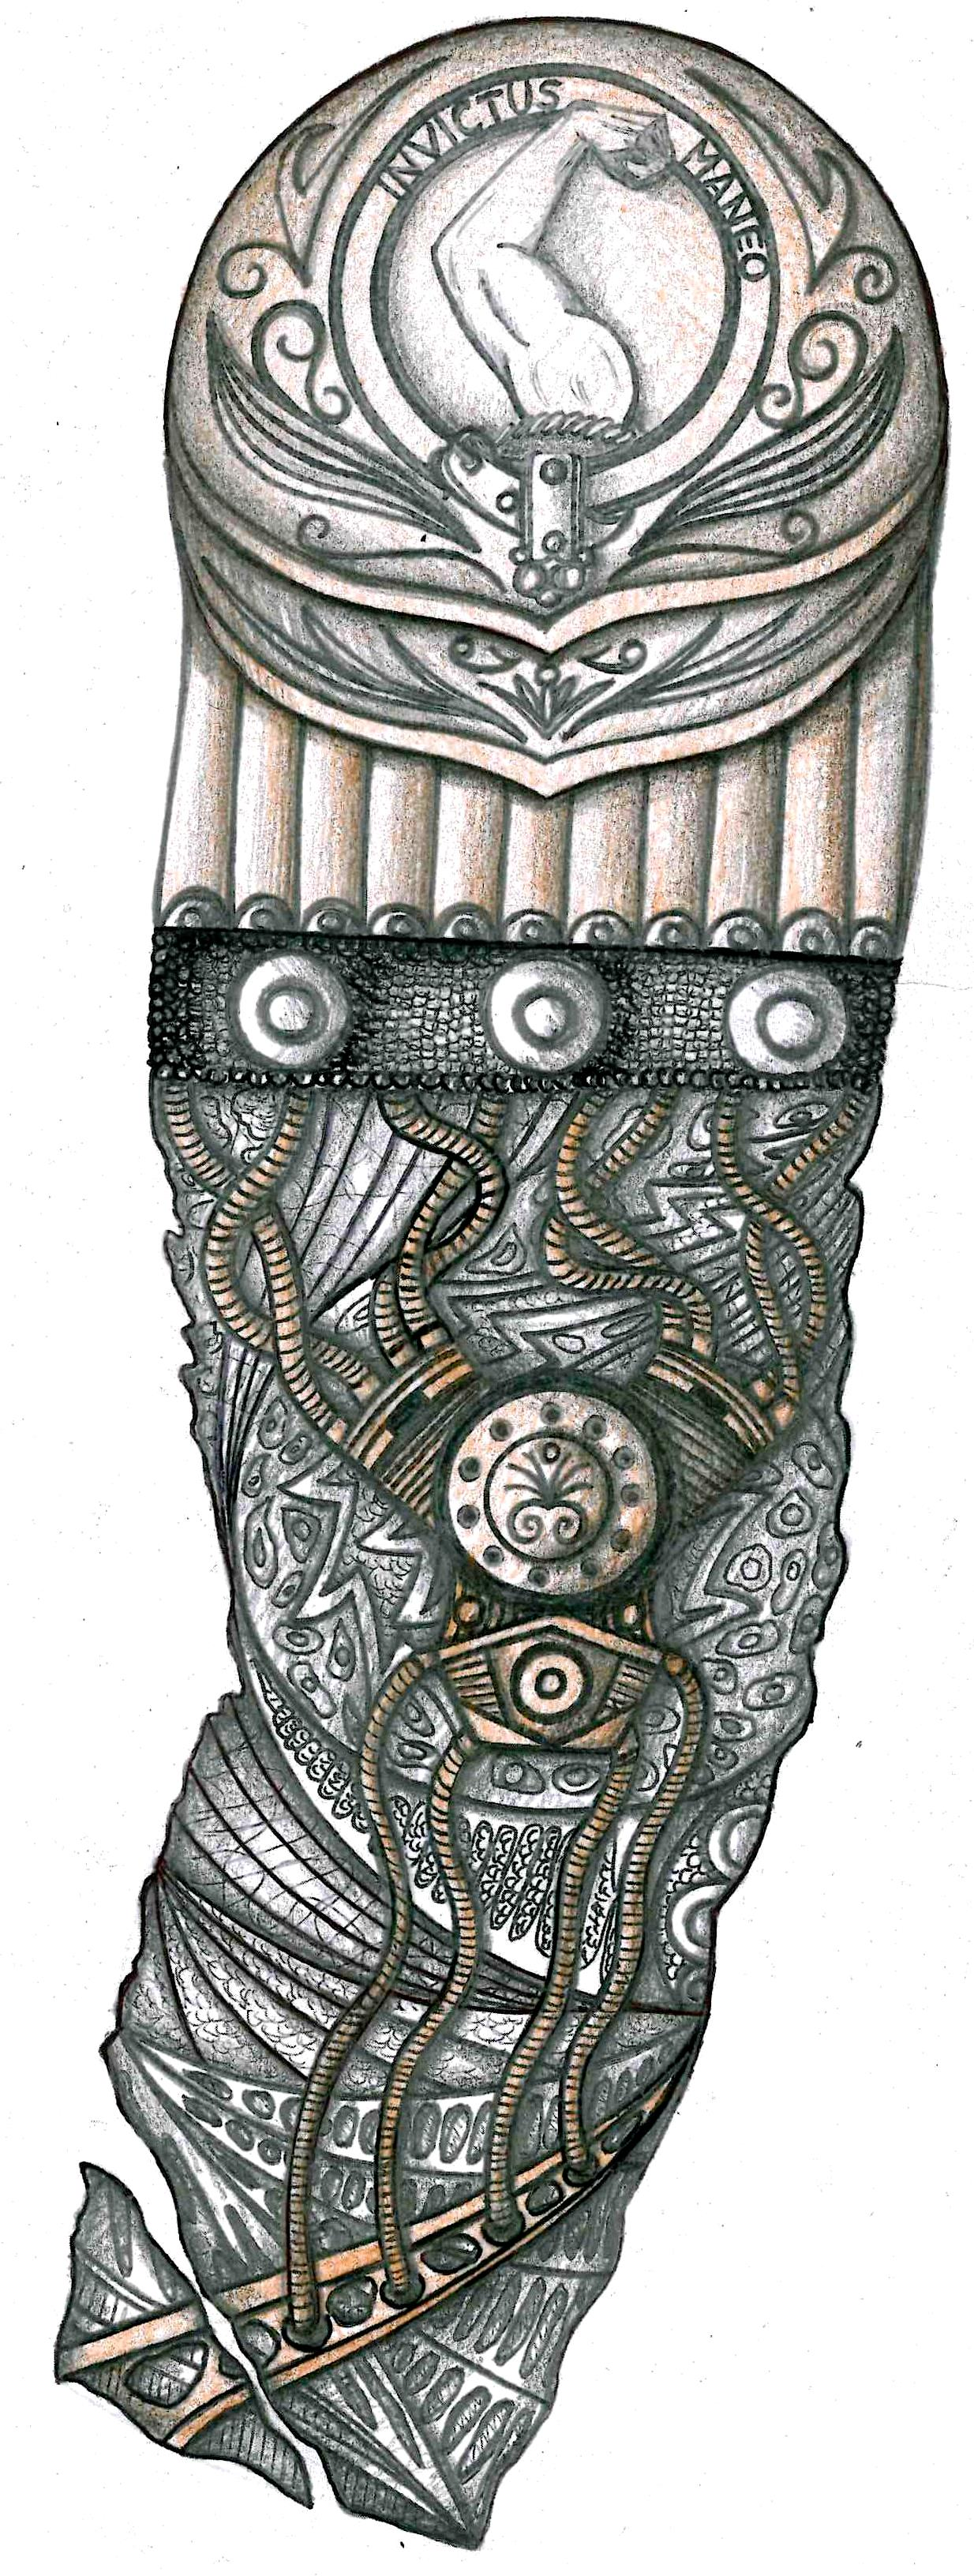 biomech sleeve tattoo design with ancient warrior armour and alien